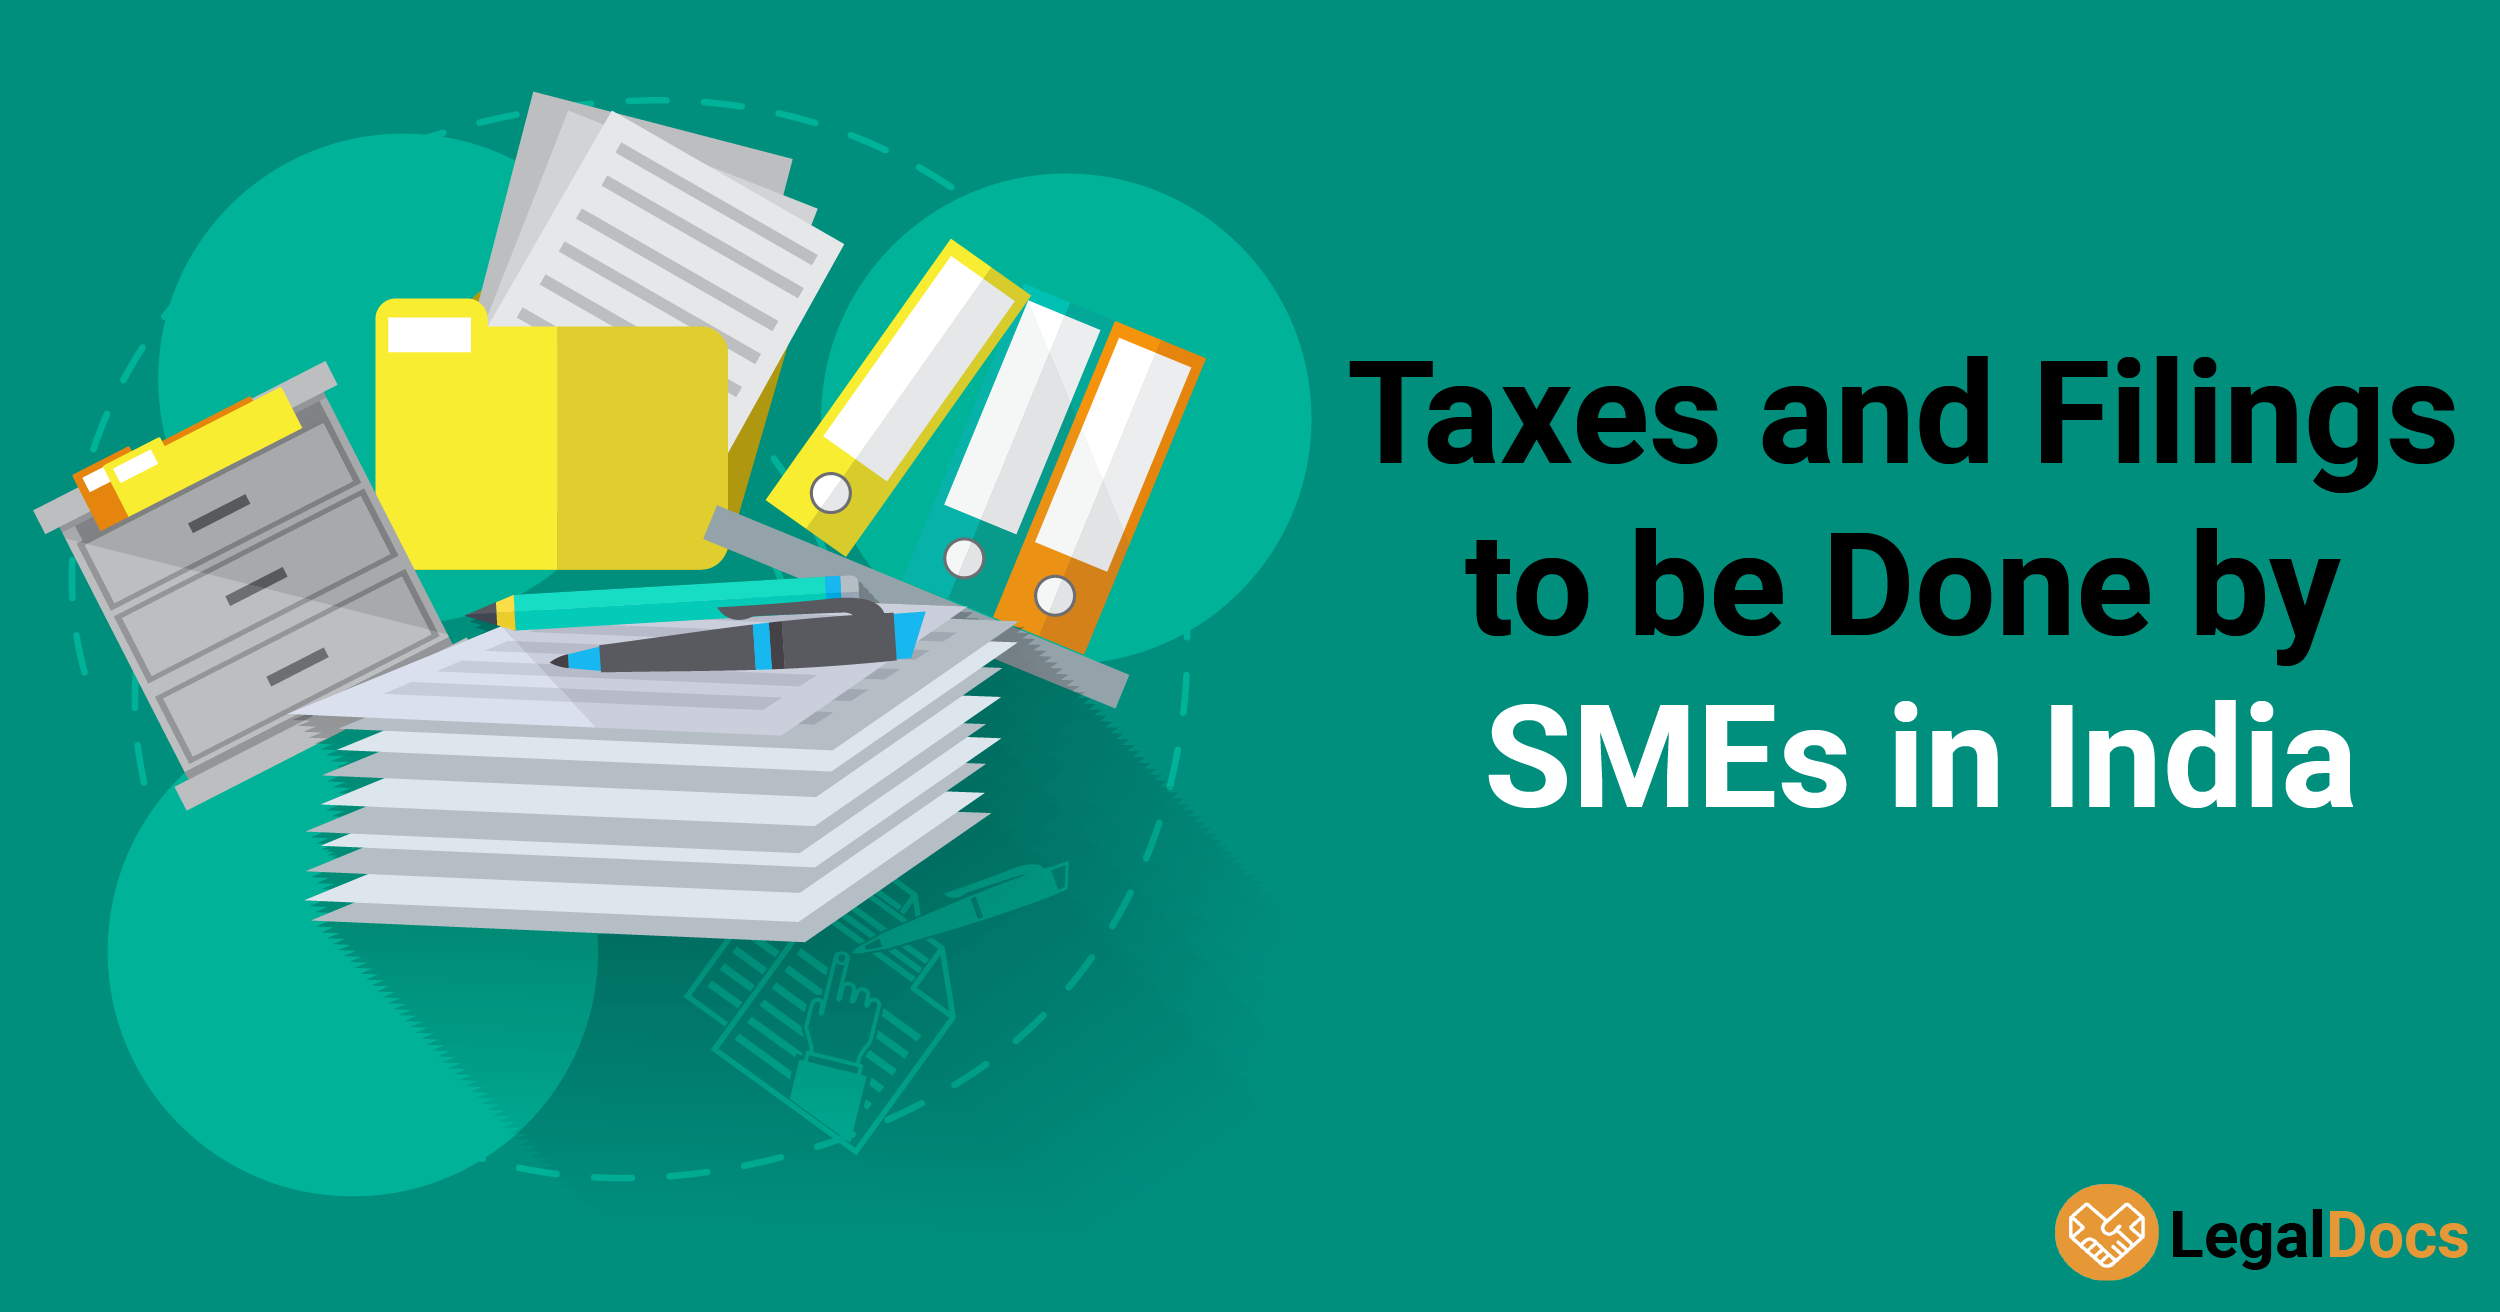 Different Taxes and Filings to Be Done by SMEs in India